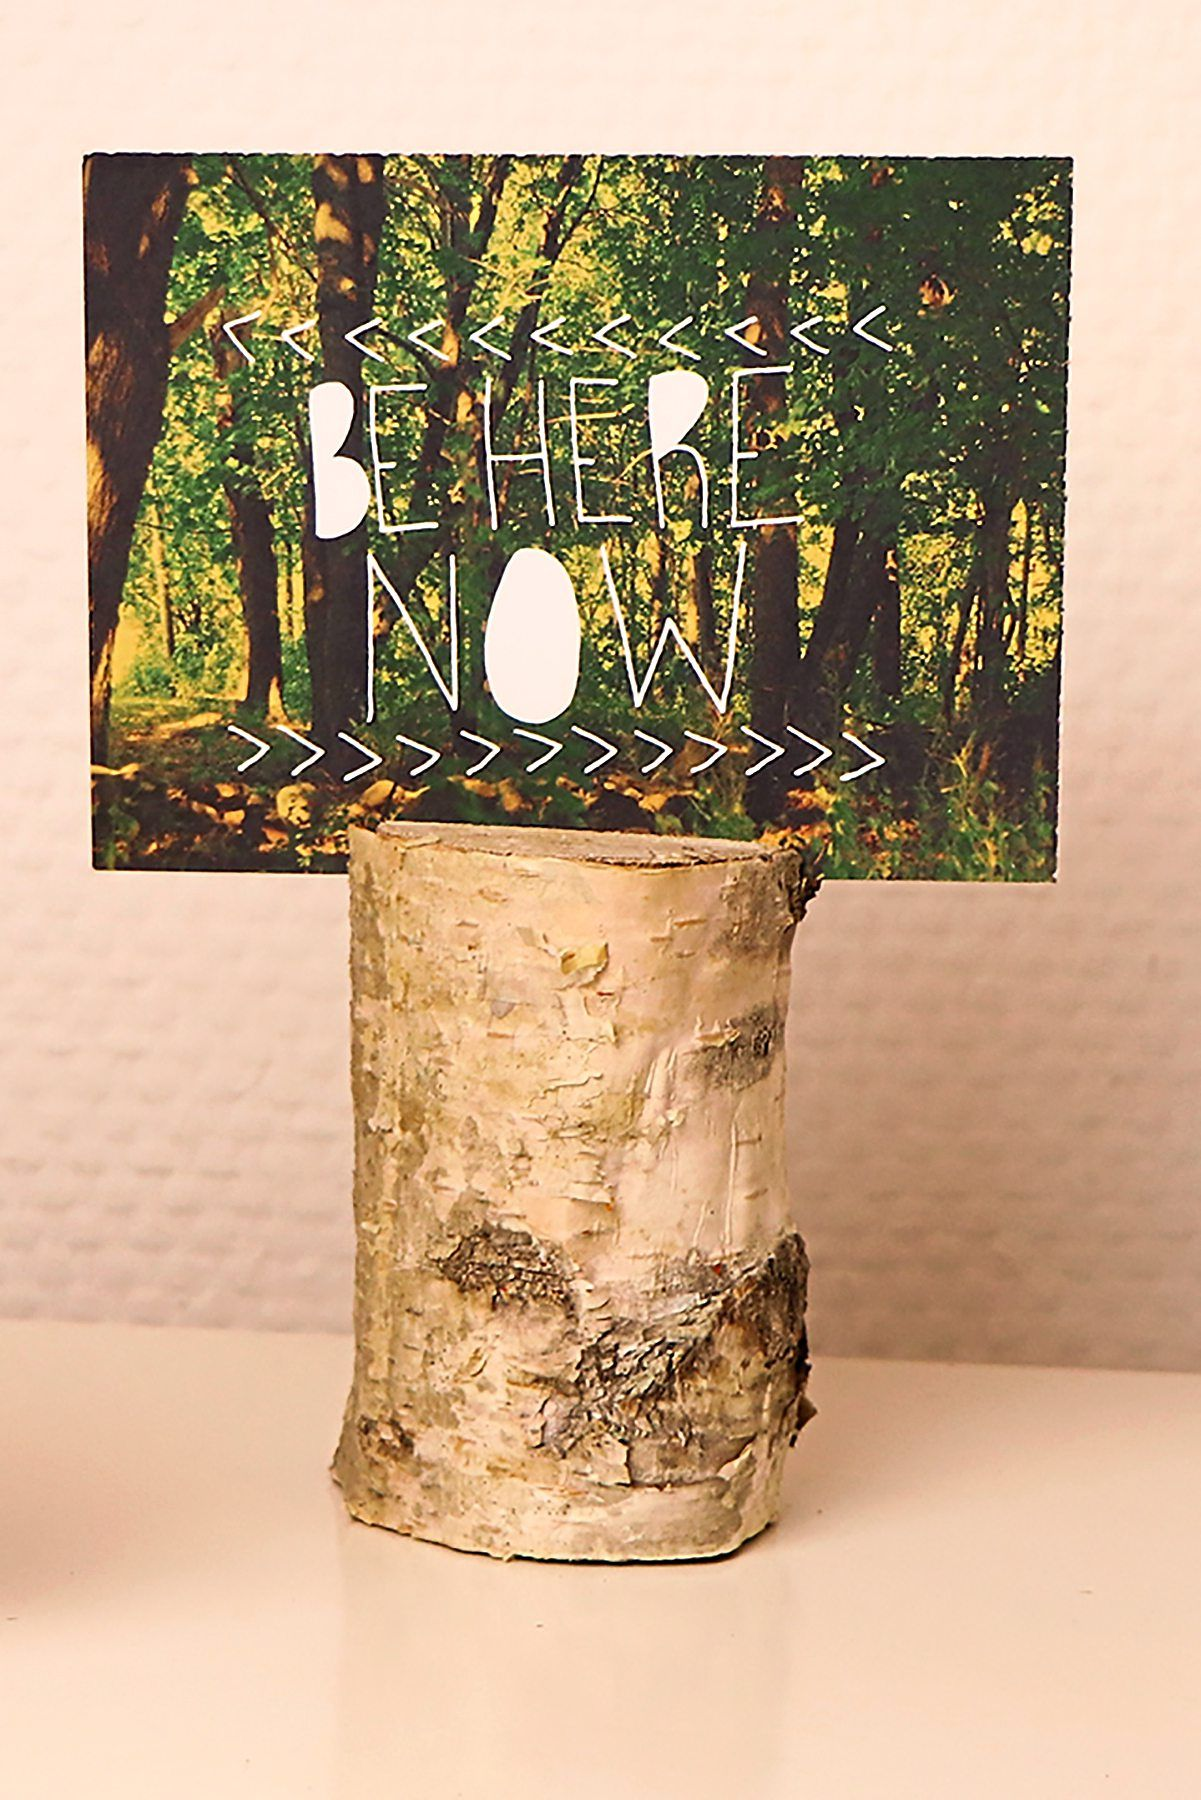 A picture holder made from a piece of birch wood. Photos: DIY Academy/dpa